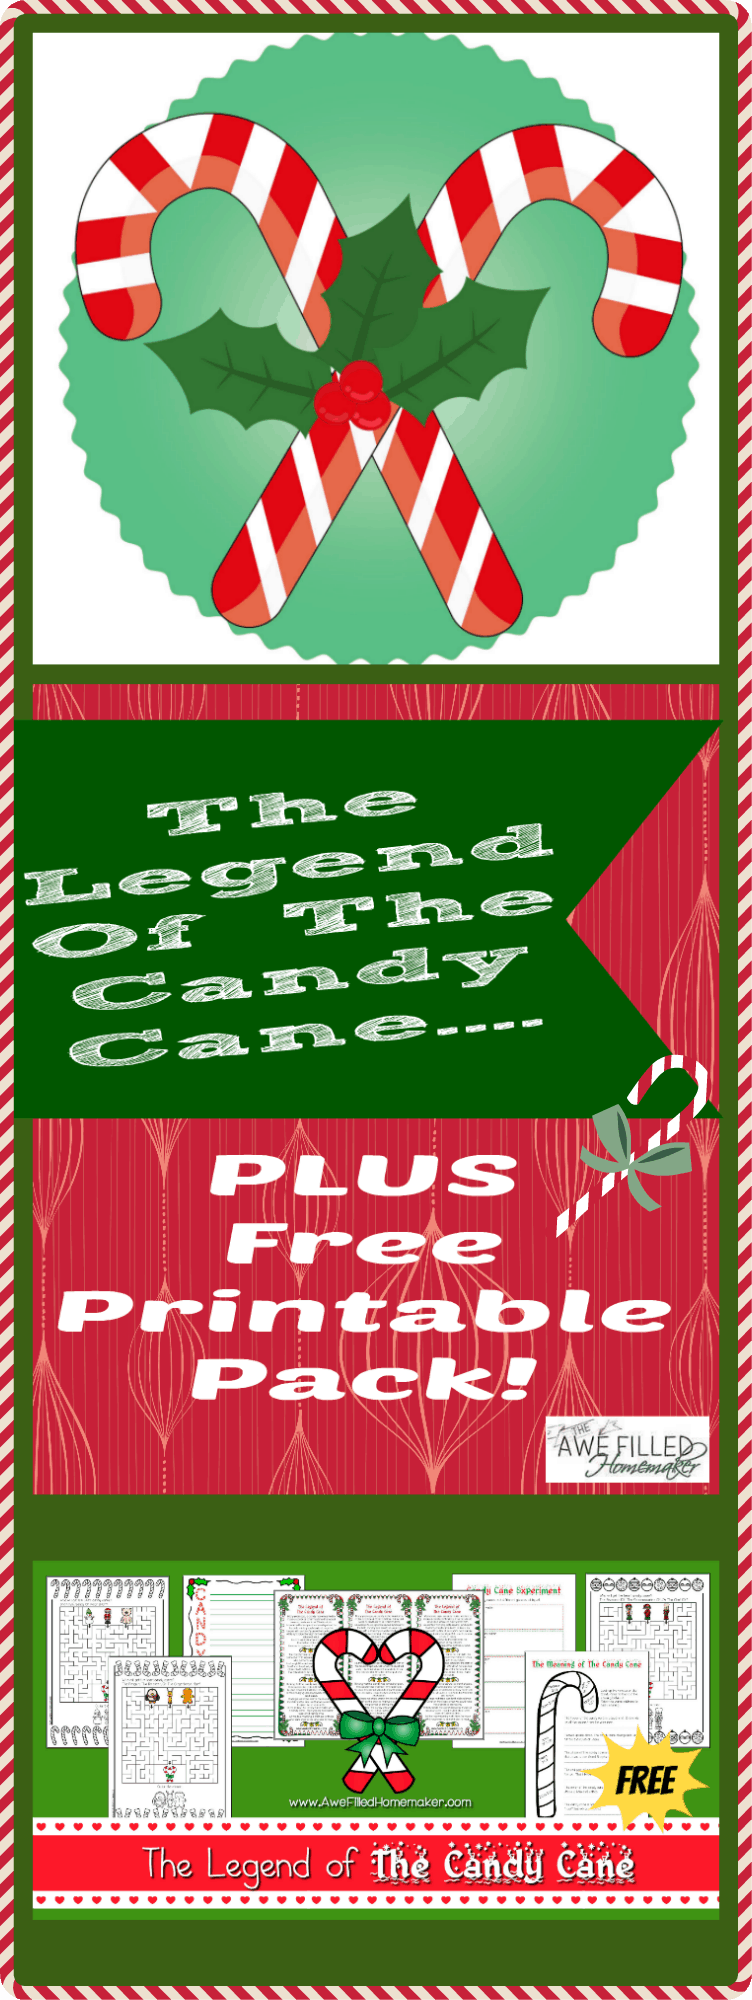 the-legend-of-the-candy-cane-verticle